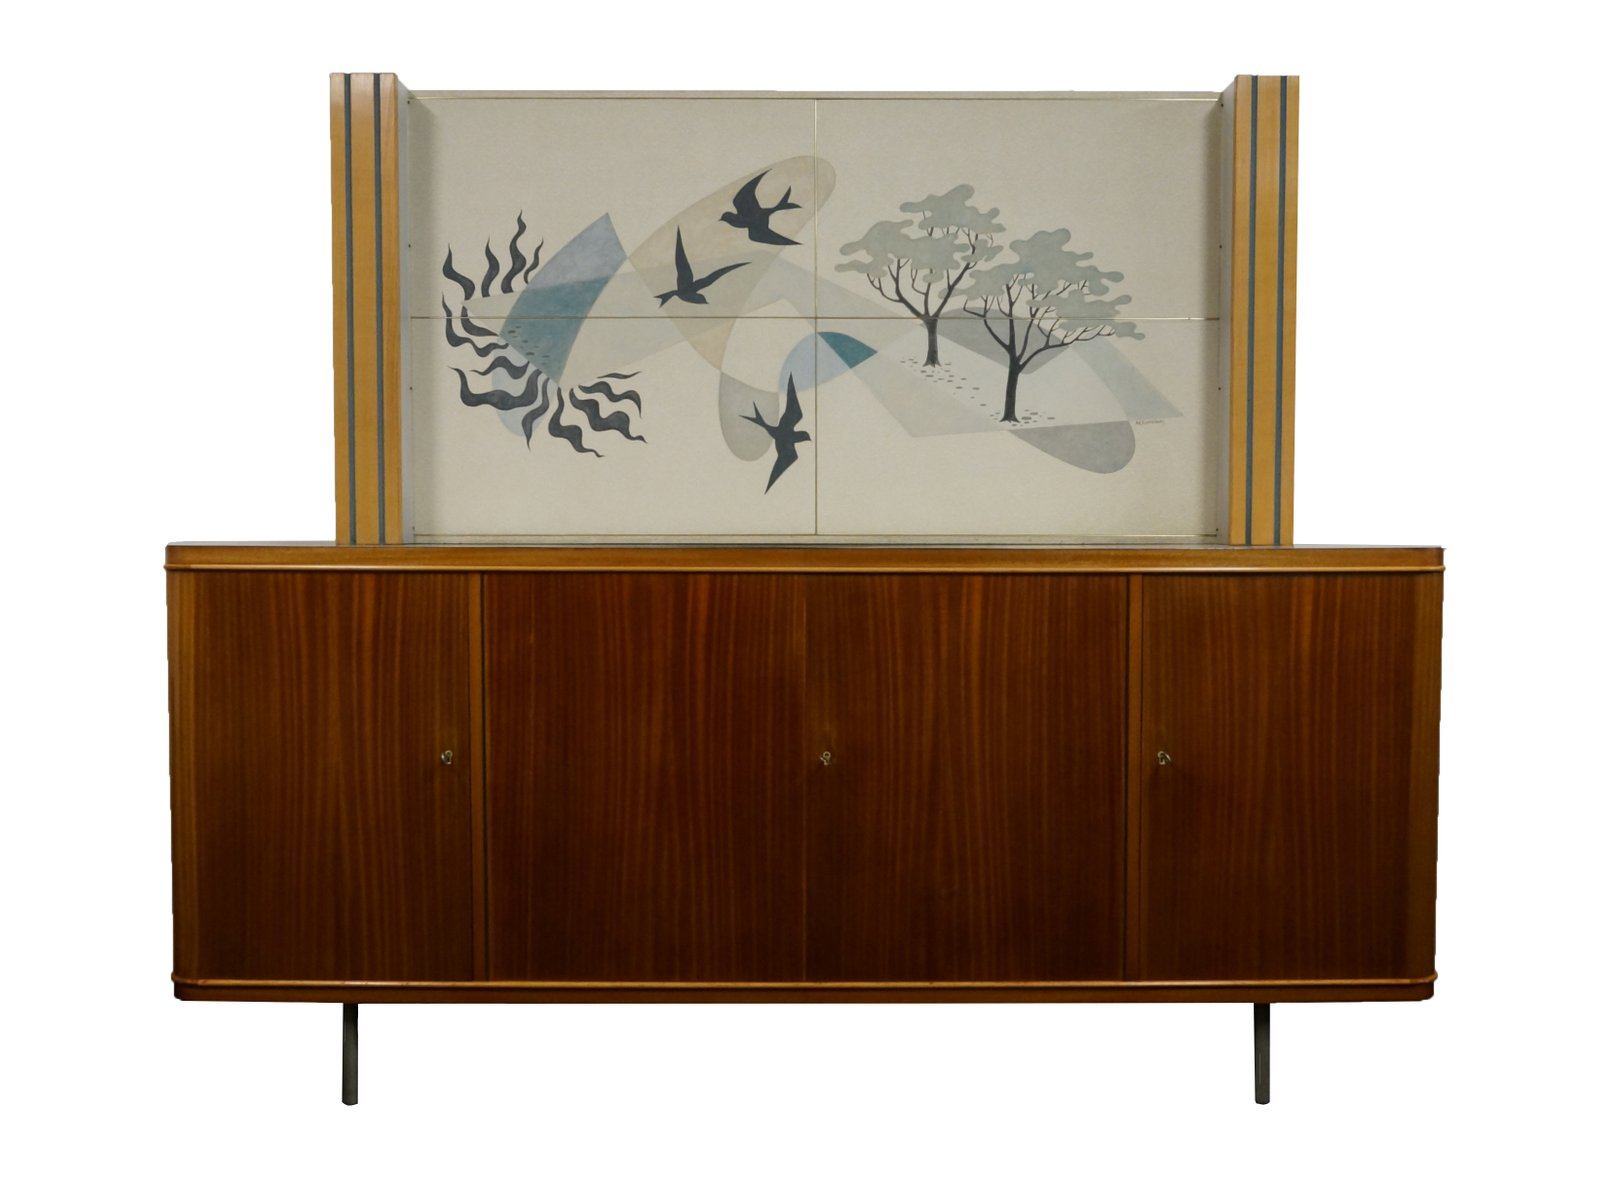 Teak Cabinet with Vinyl Artwork by Akkermans for sale at Pamono